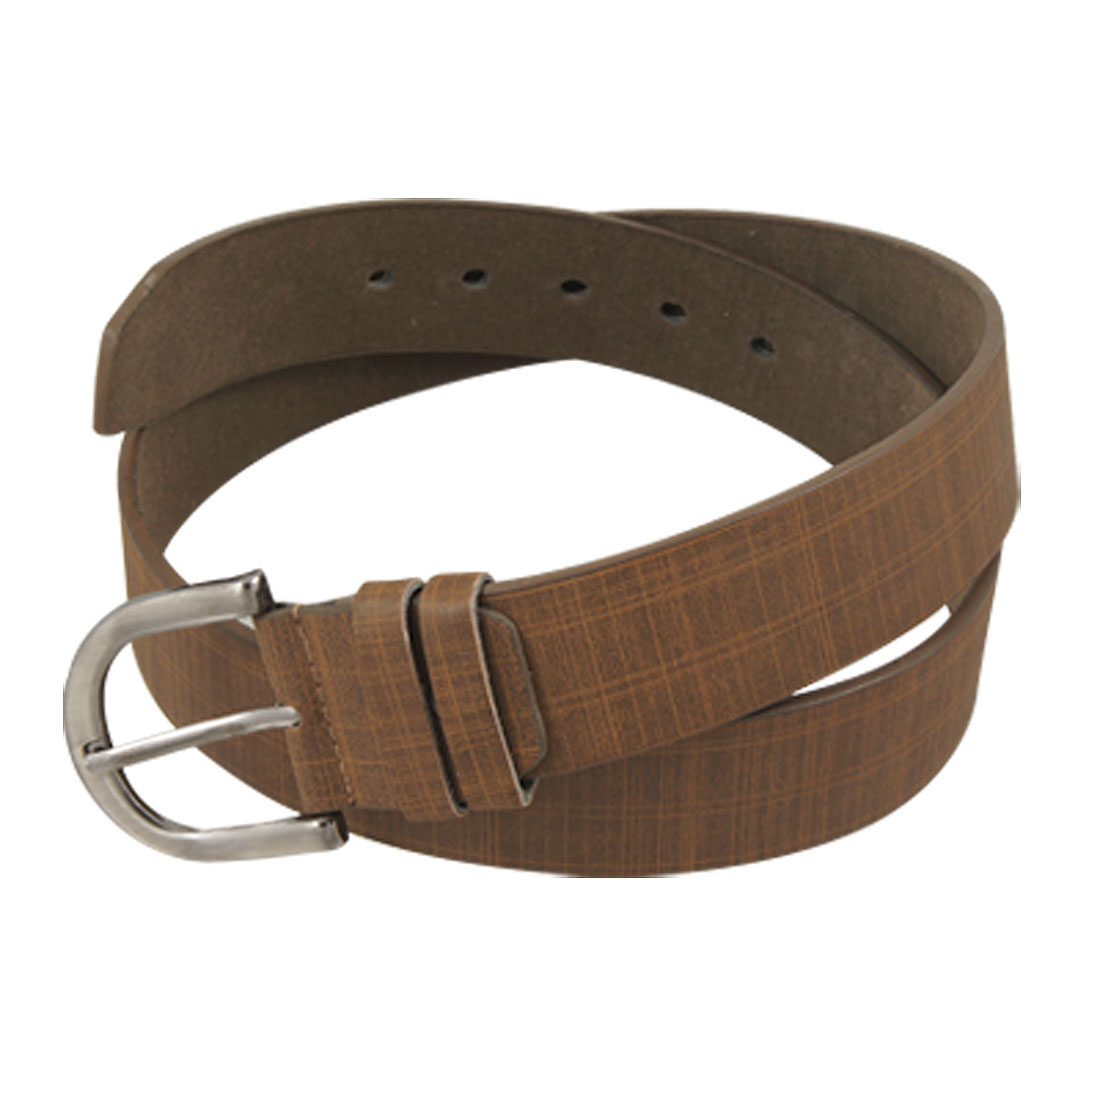 Single Prong Buckle Pin Striped Decor Brown Faux Leather Belt for Lady